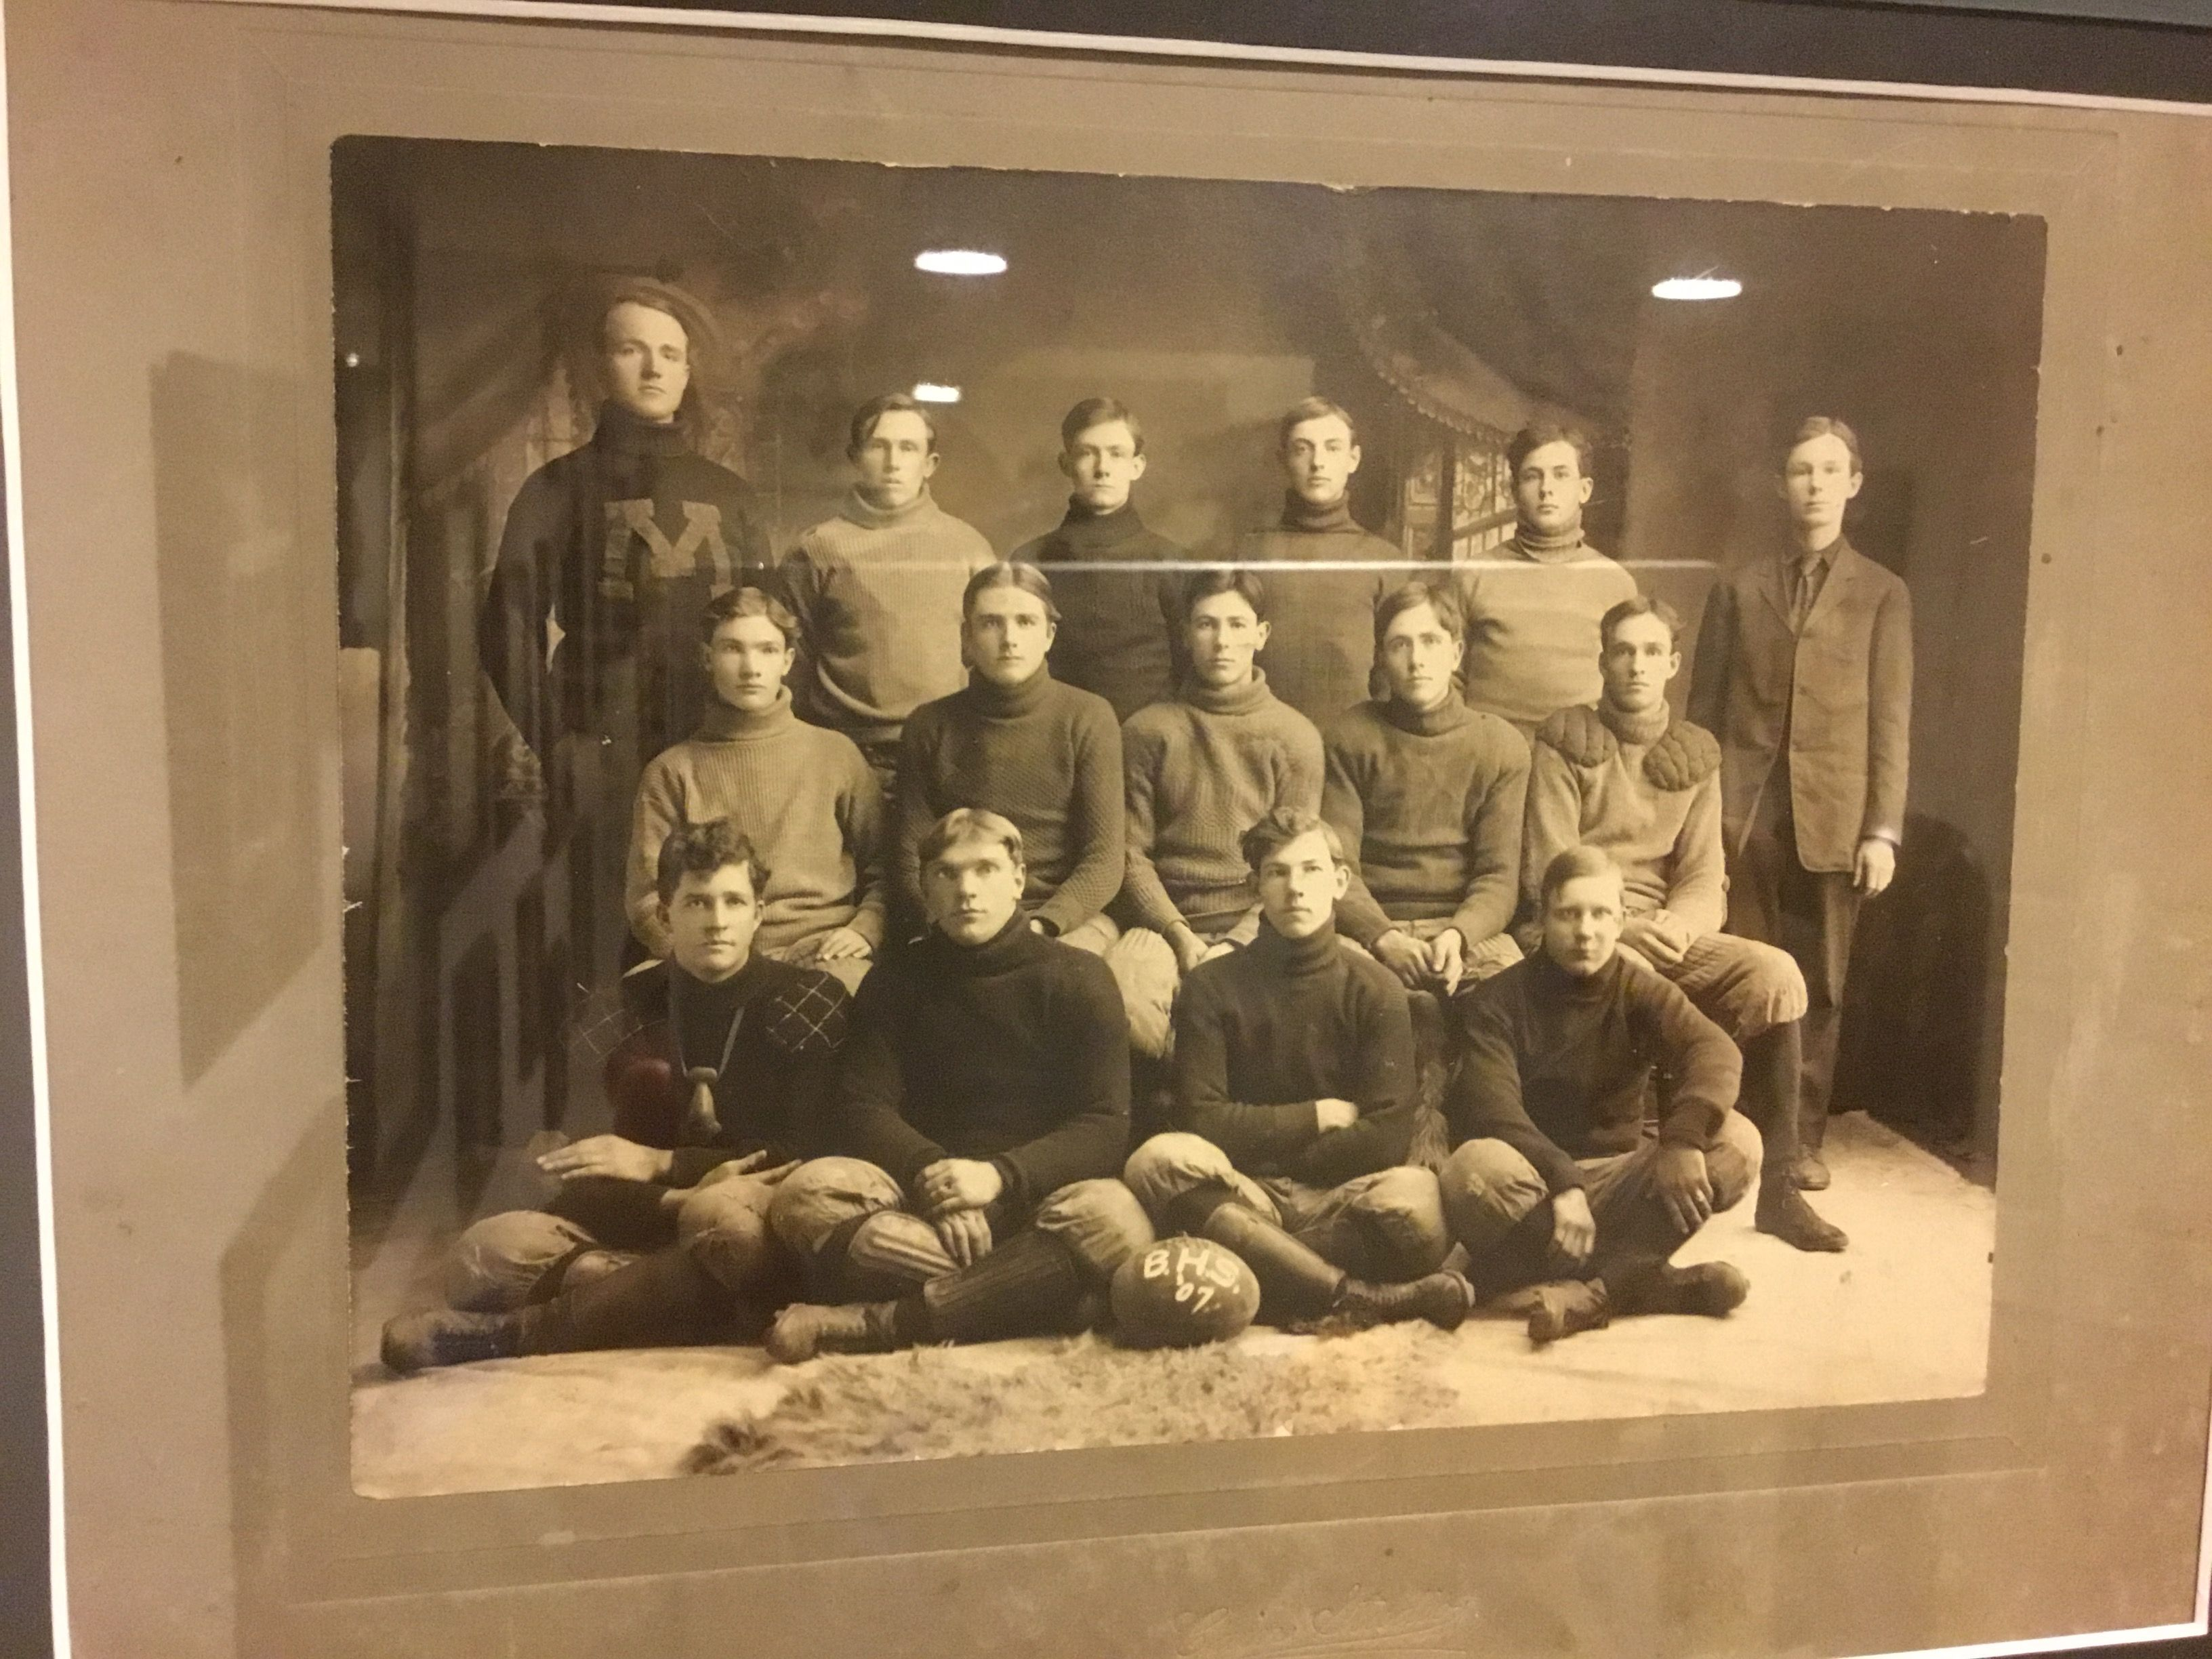 1907 football team including a player with nose guard and exterior shoulder pads, and shin guards.